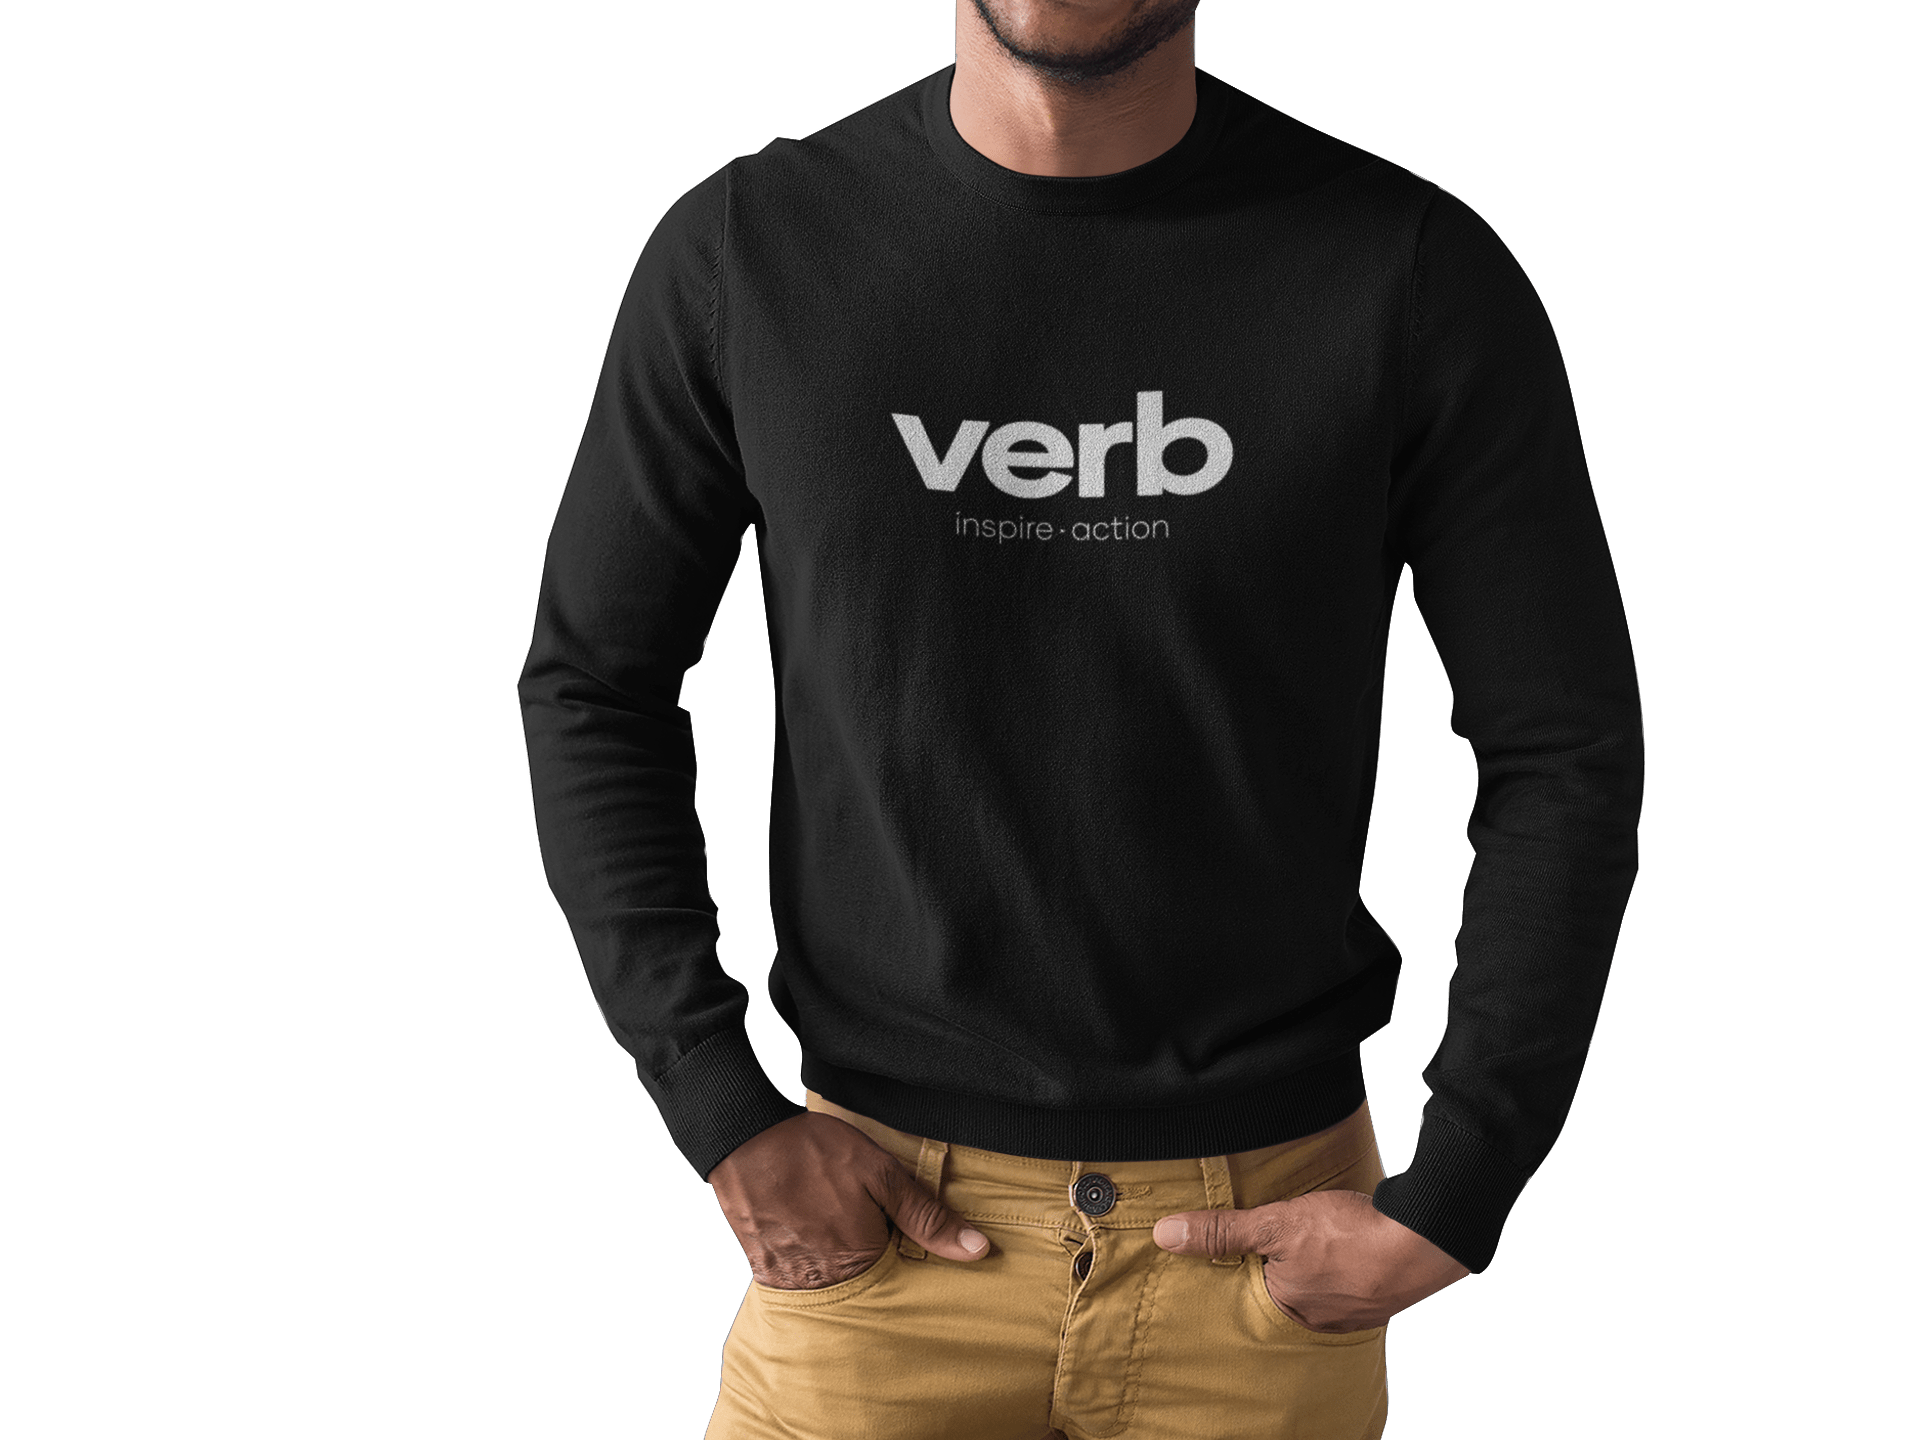 Black Man Wearing A Long Sleeve Tee Mockup While Standing Cropped Faced Against Transparent Surface A15512 1